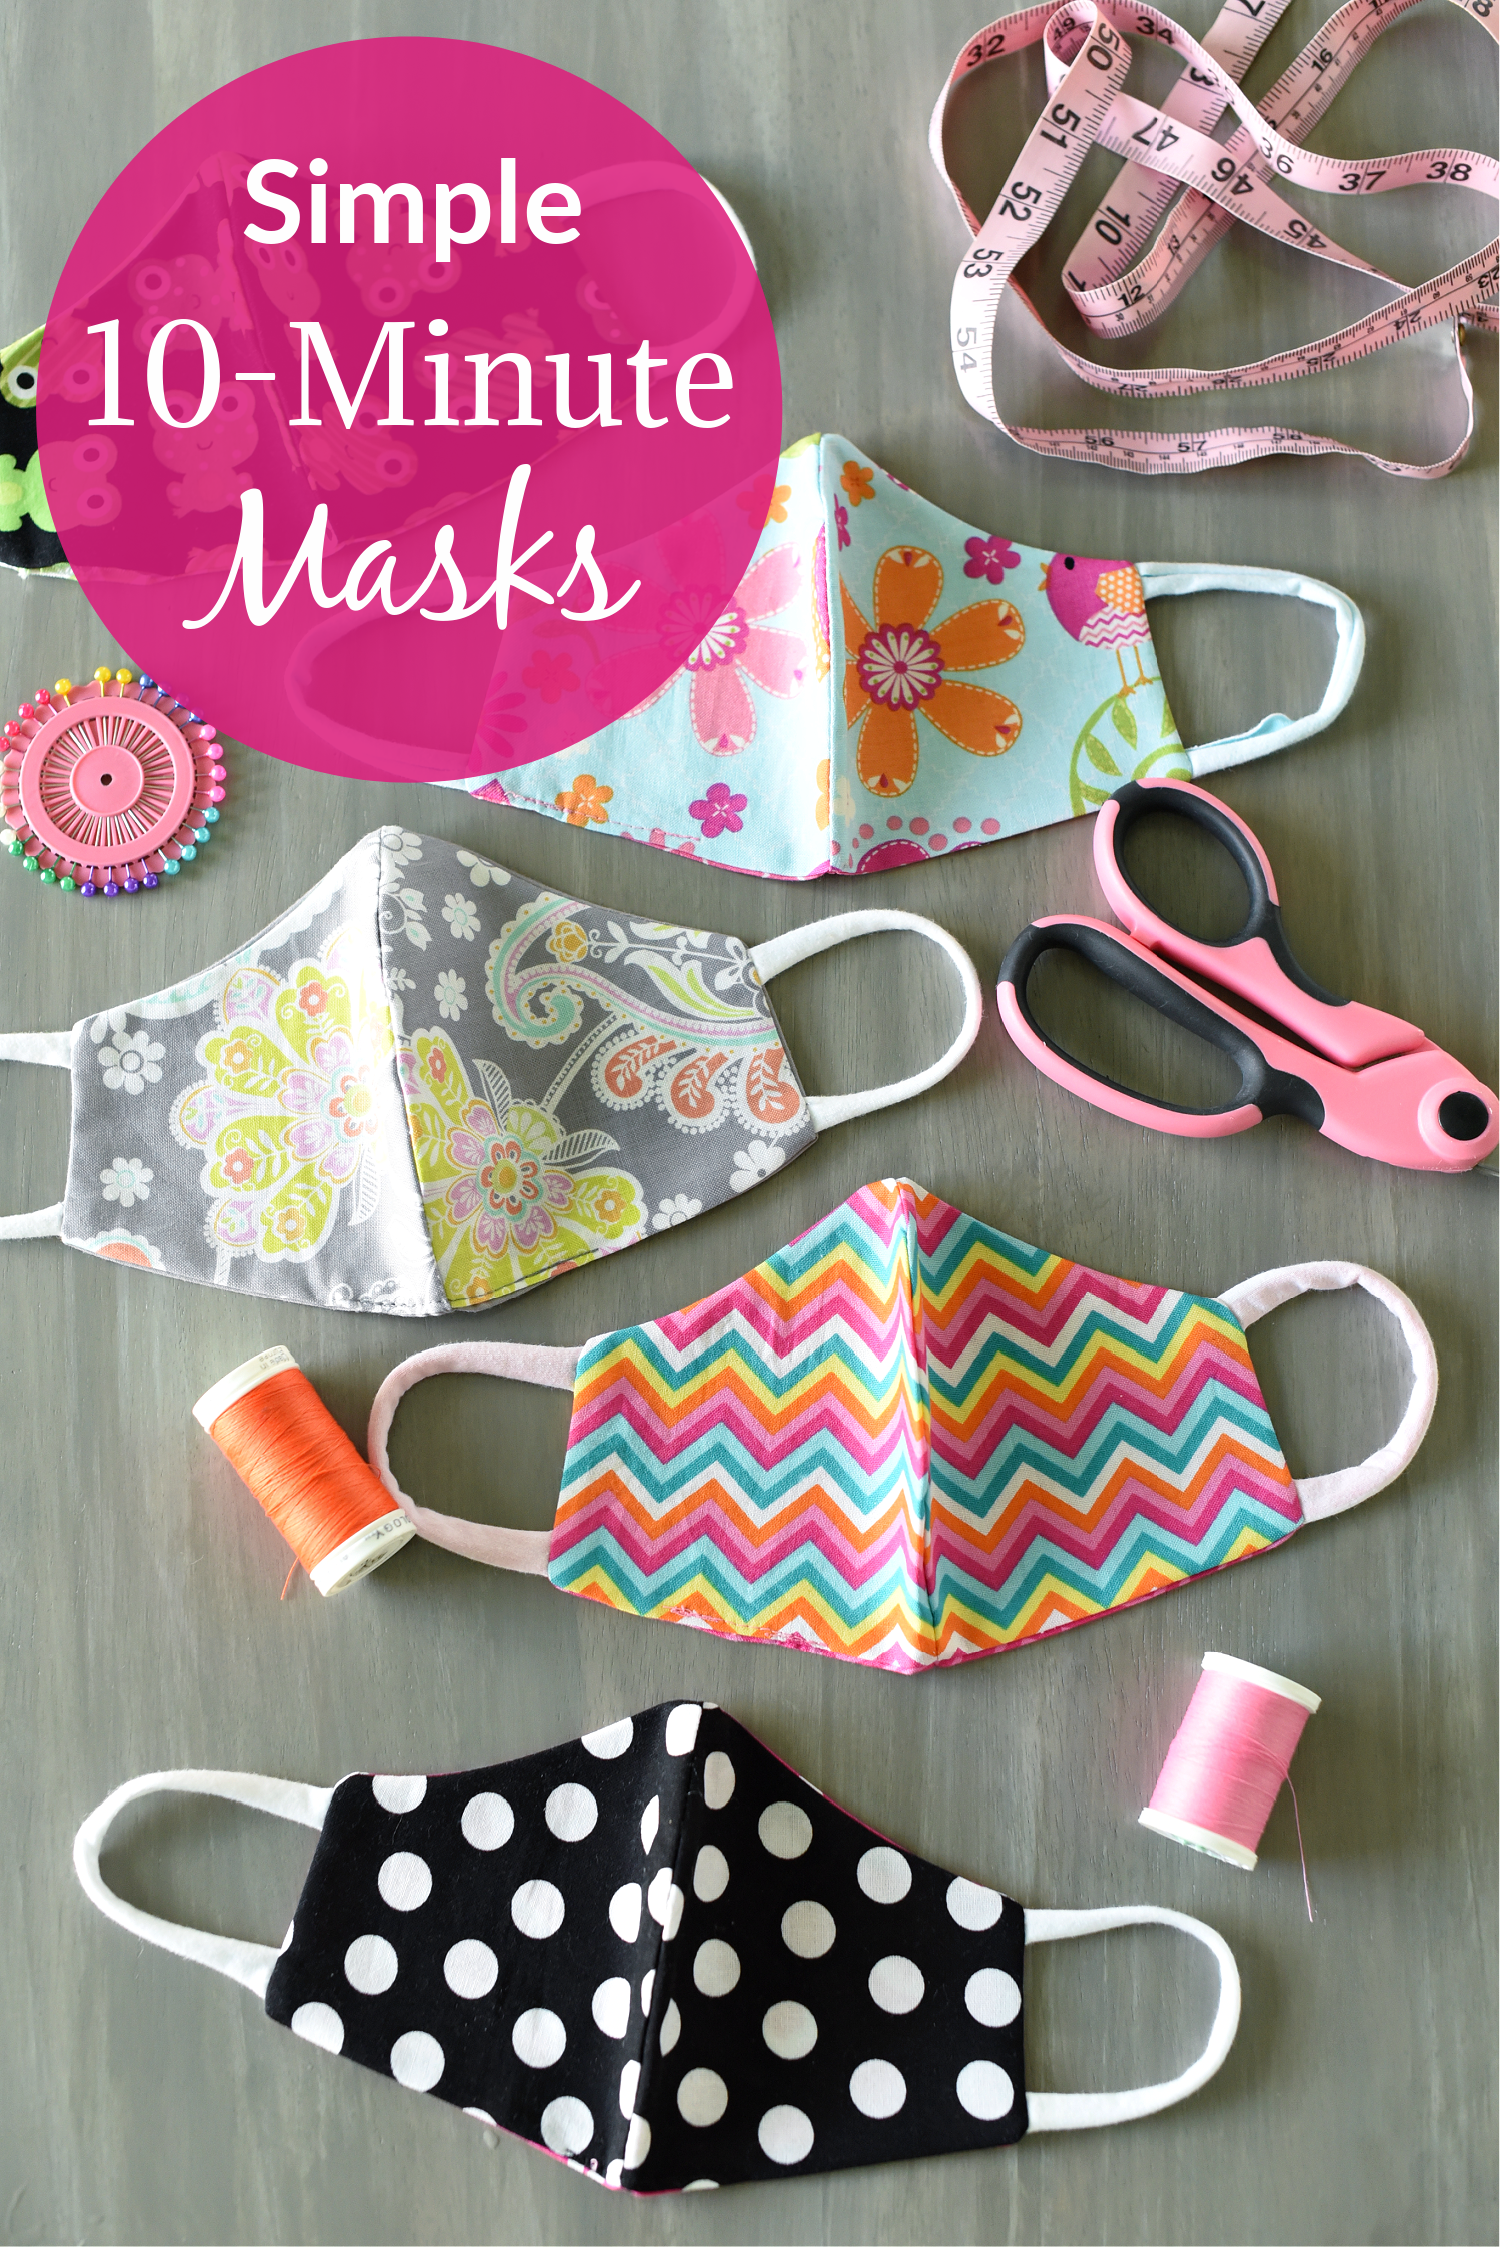 Simple Face Mask Pattern that is easy to make and comfortable to wear. Available in 5 sizes for all ages. #masks #maskpattern #sewing